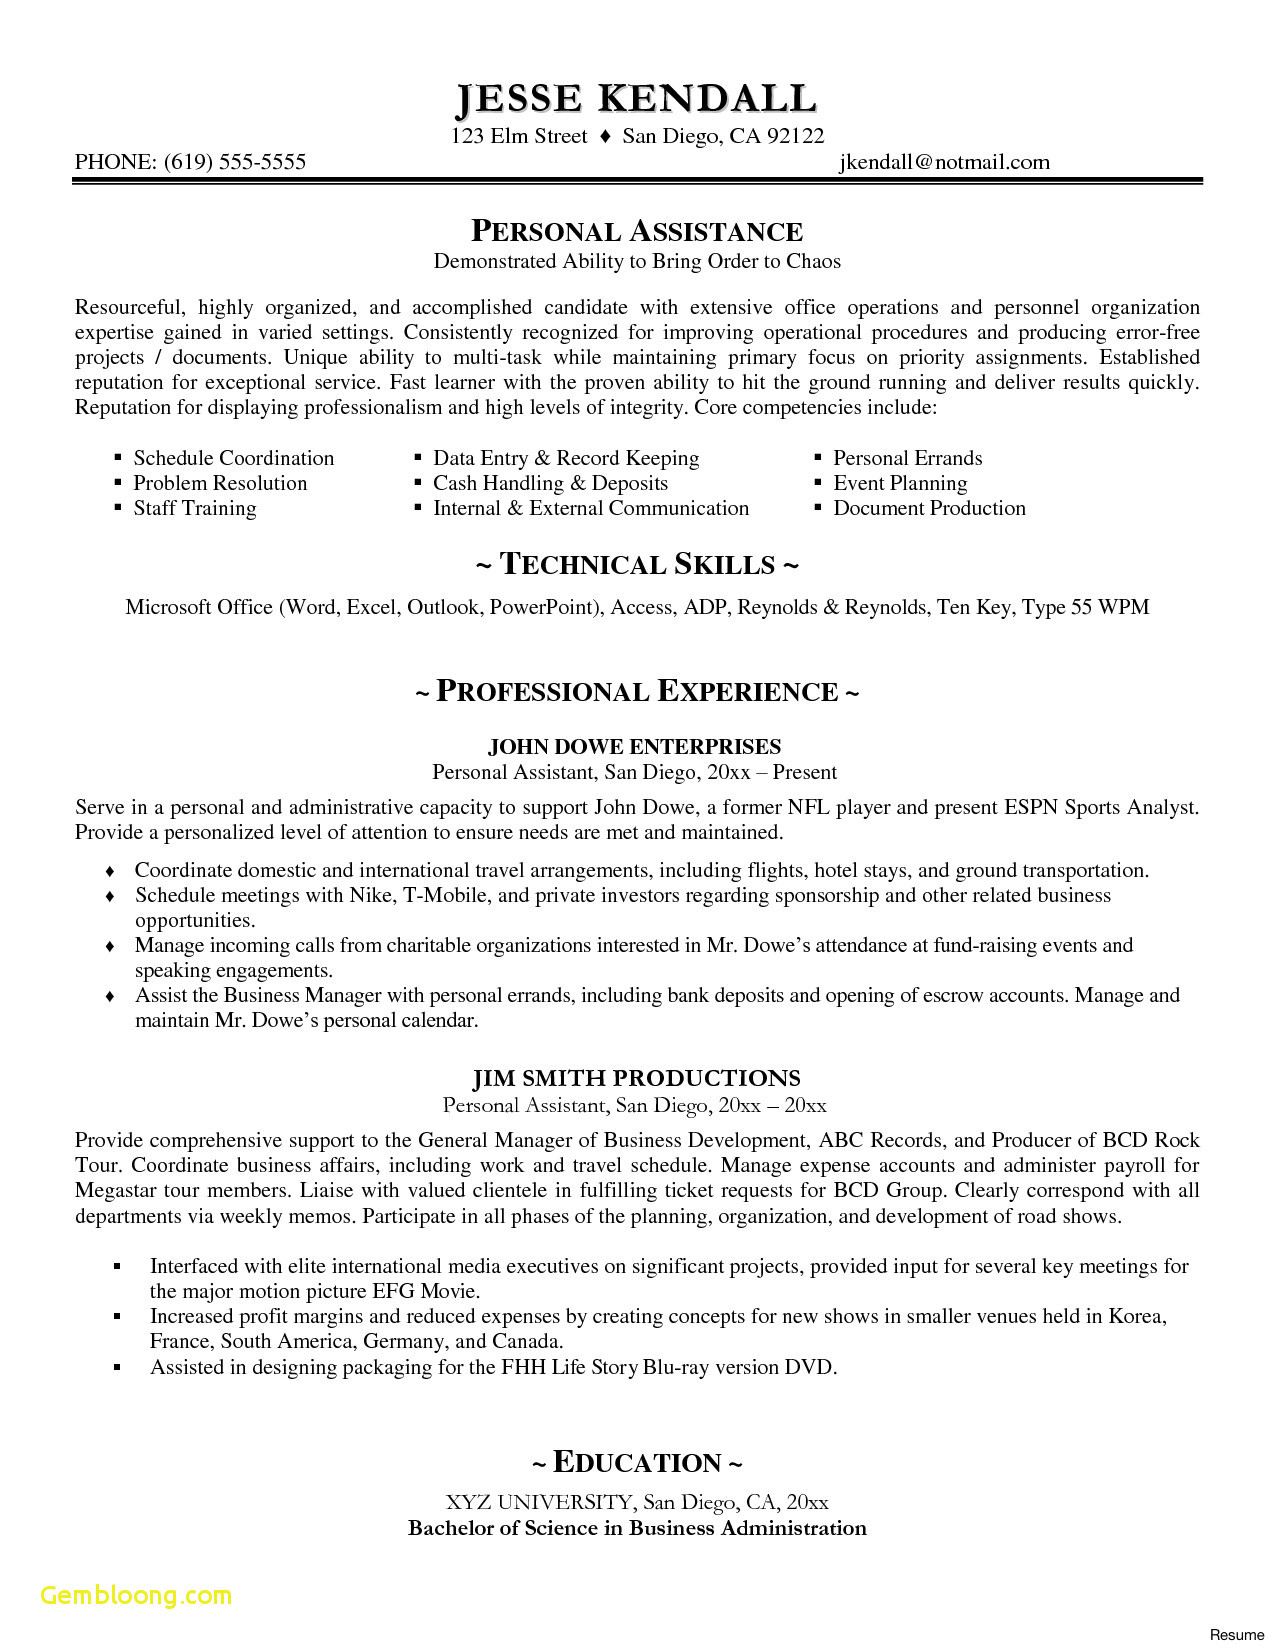 Cover Letter Template Word Free Download - Free Cover Letter Template Word Luxury Resume Template Doc Free